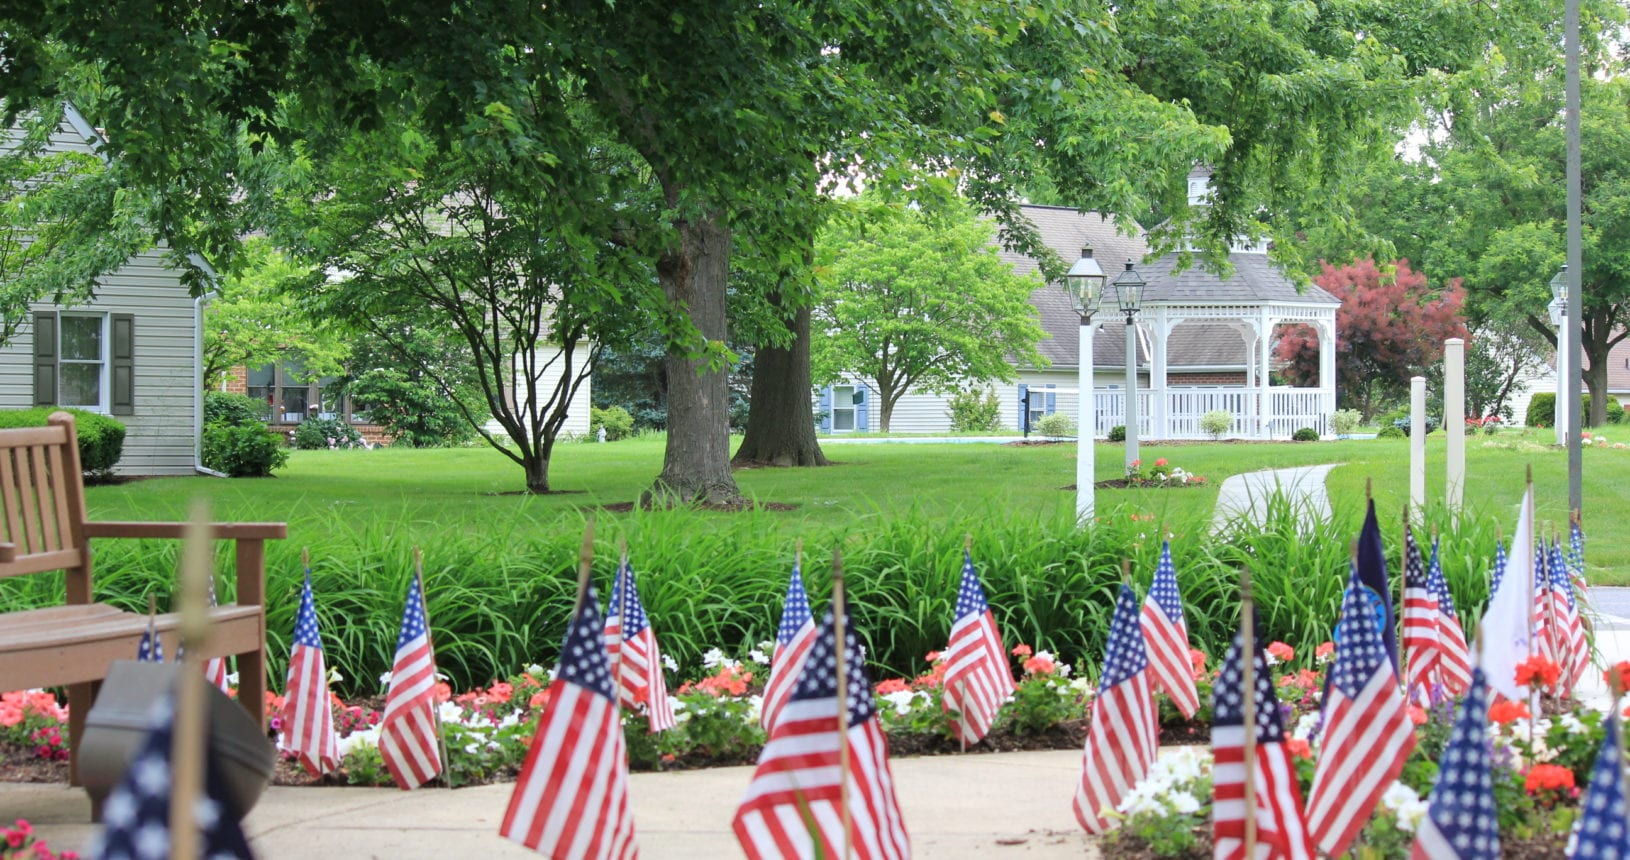 Flags and a Gazebo at the Front Entrance of the Homestead Village Apartment Building